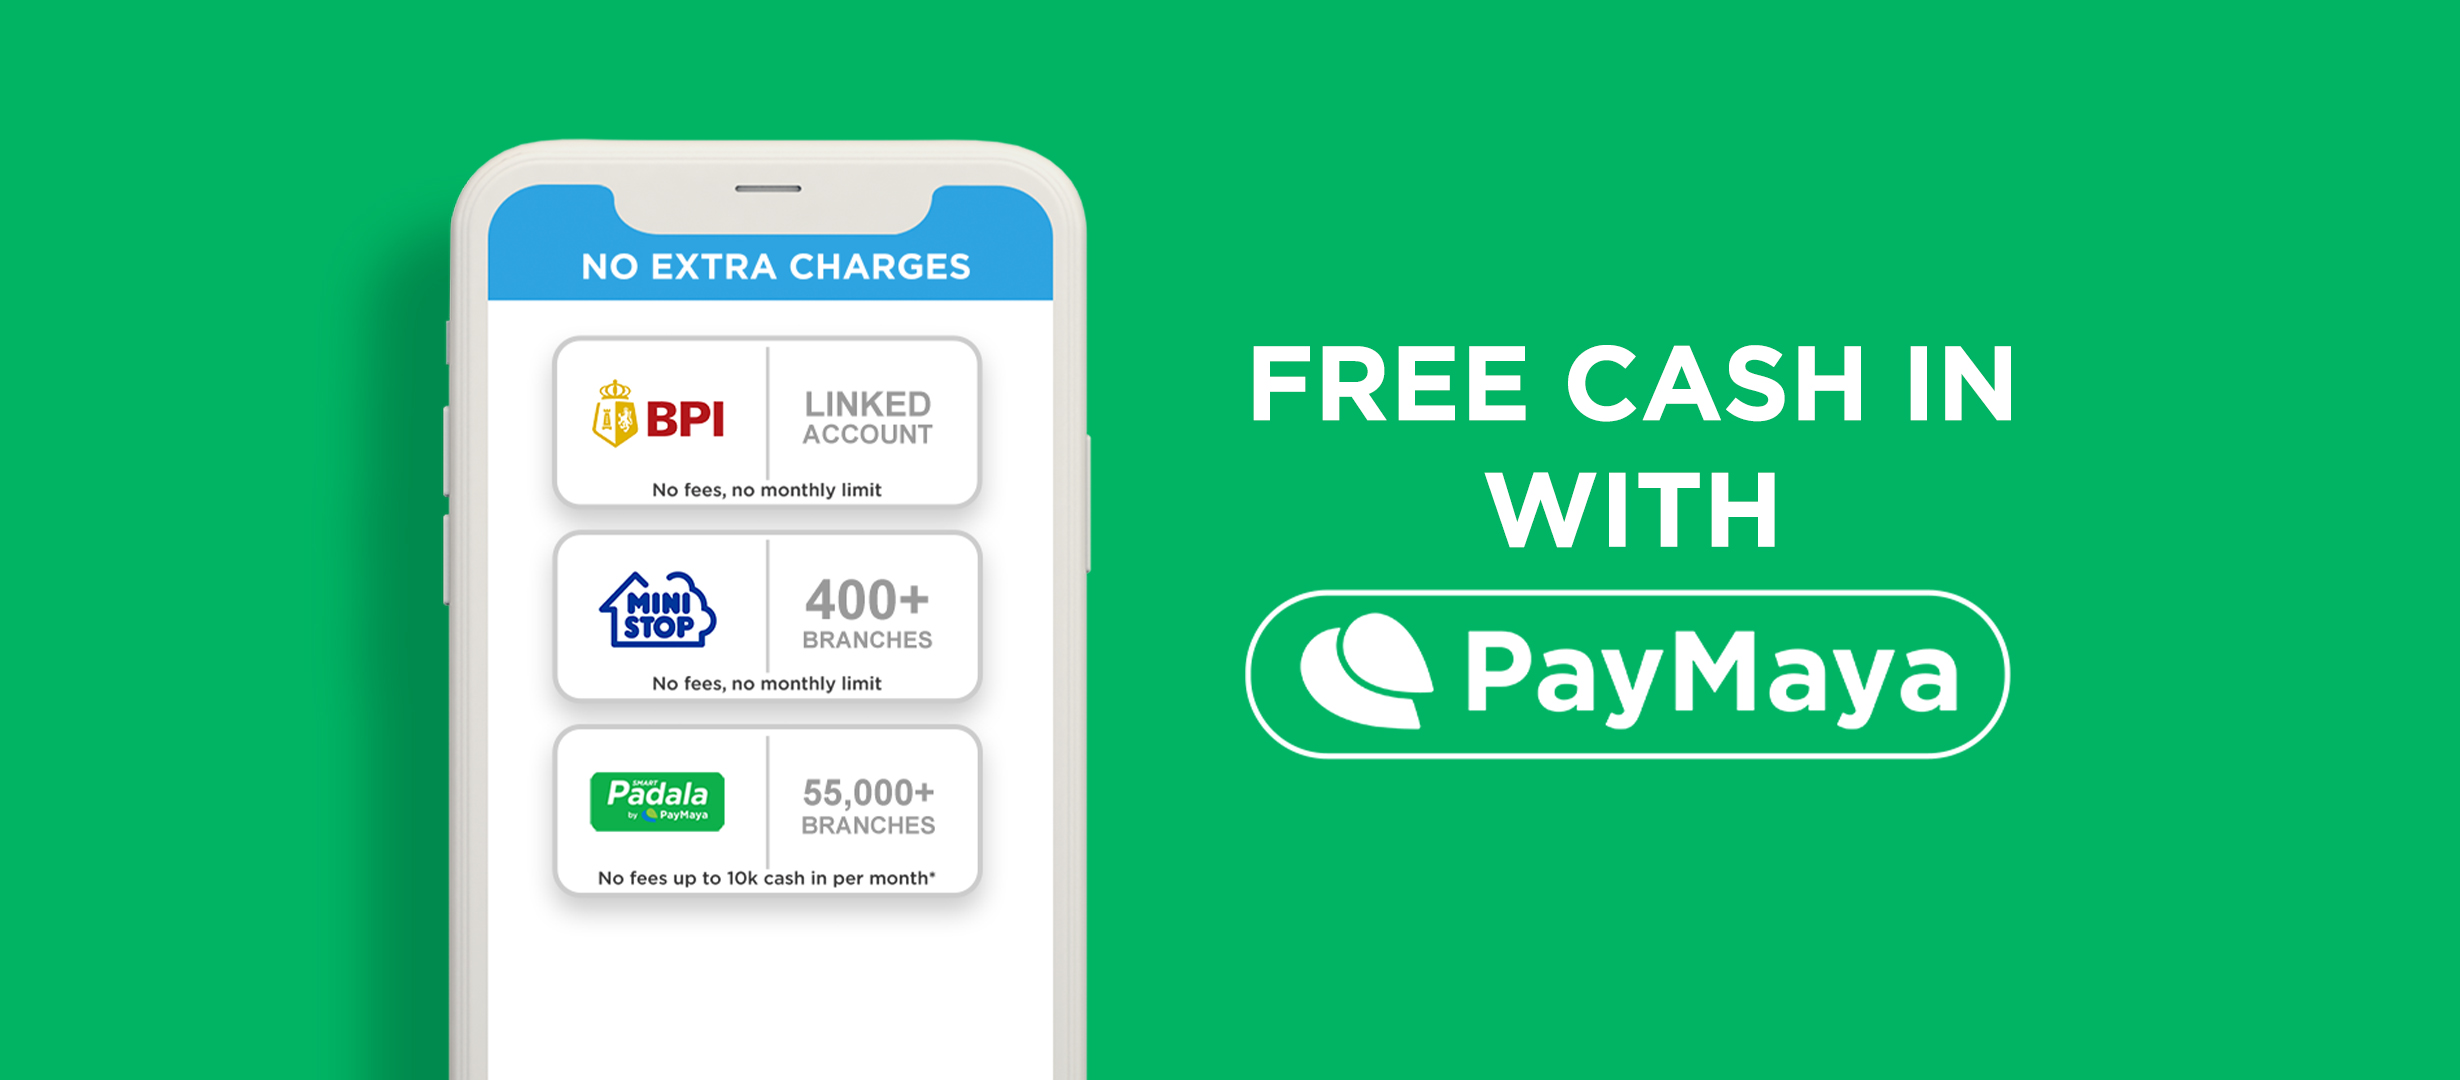 Cash in with PayMaya